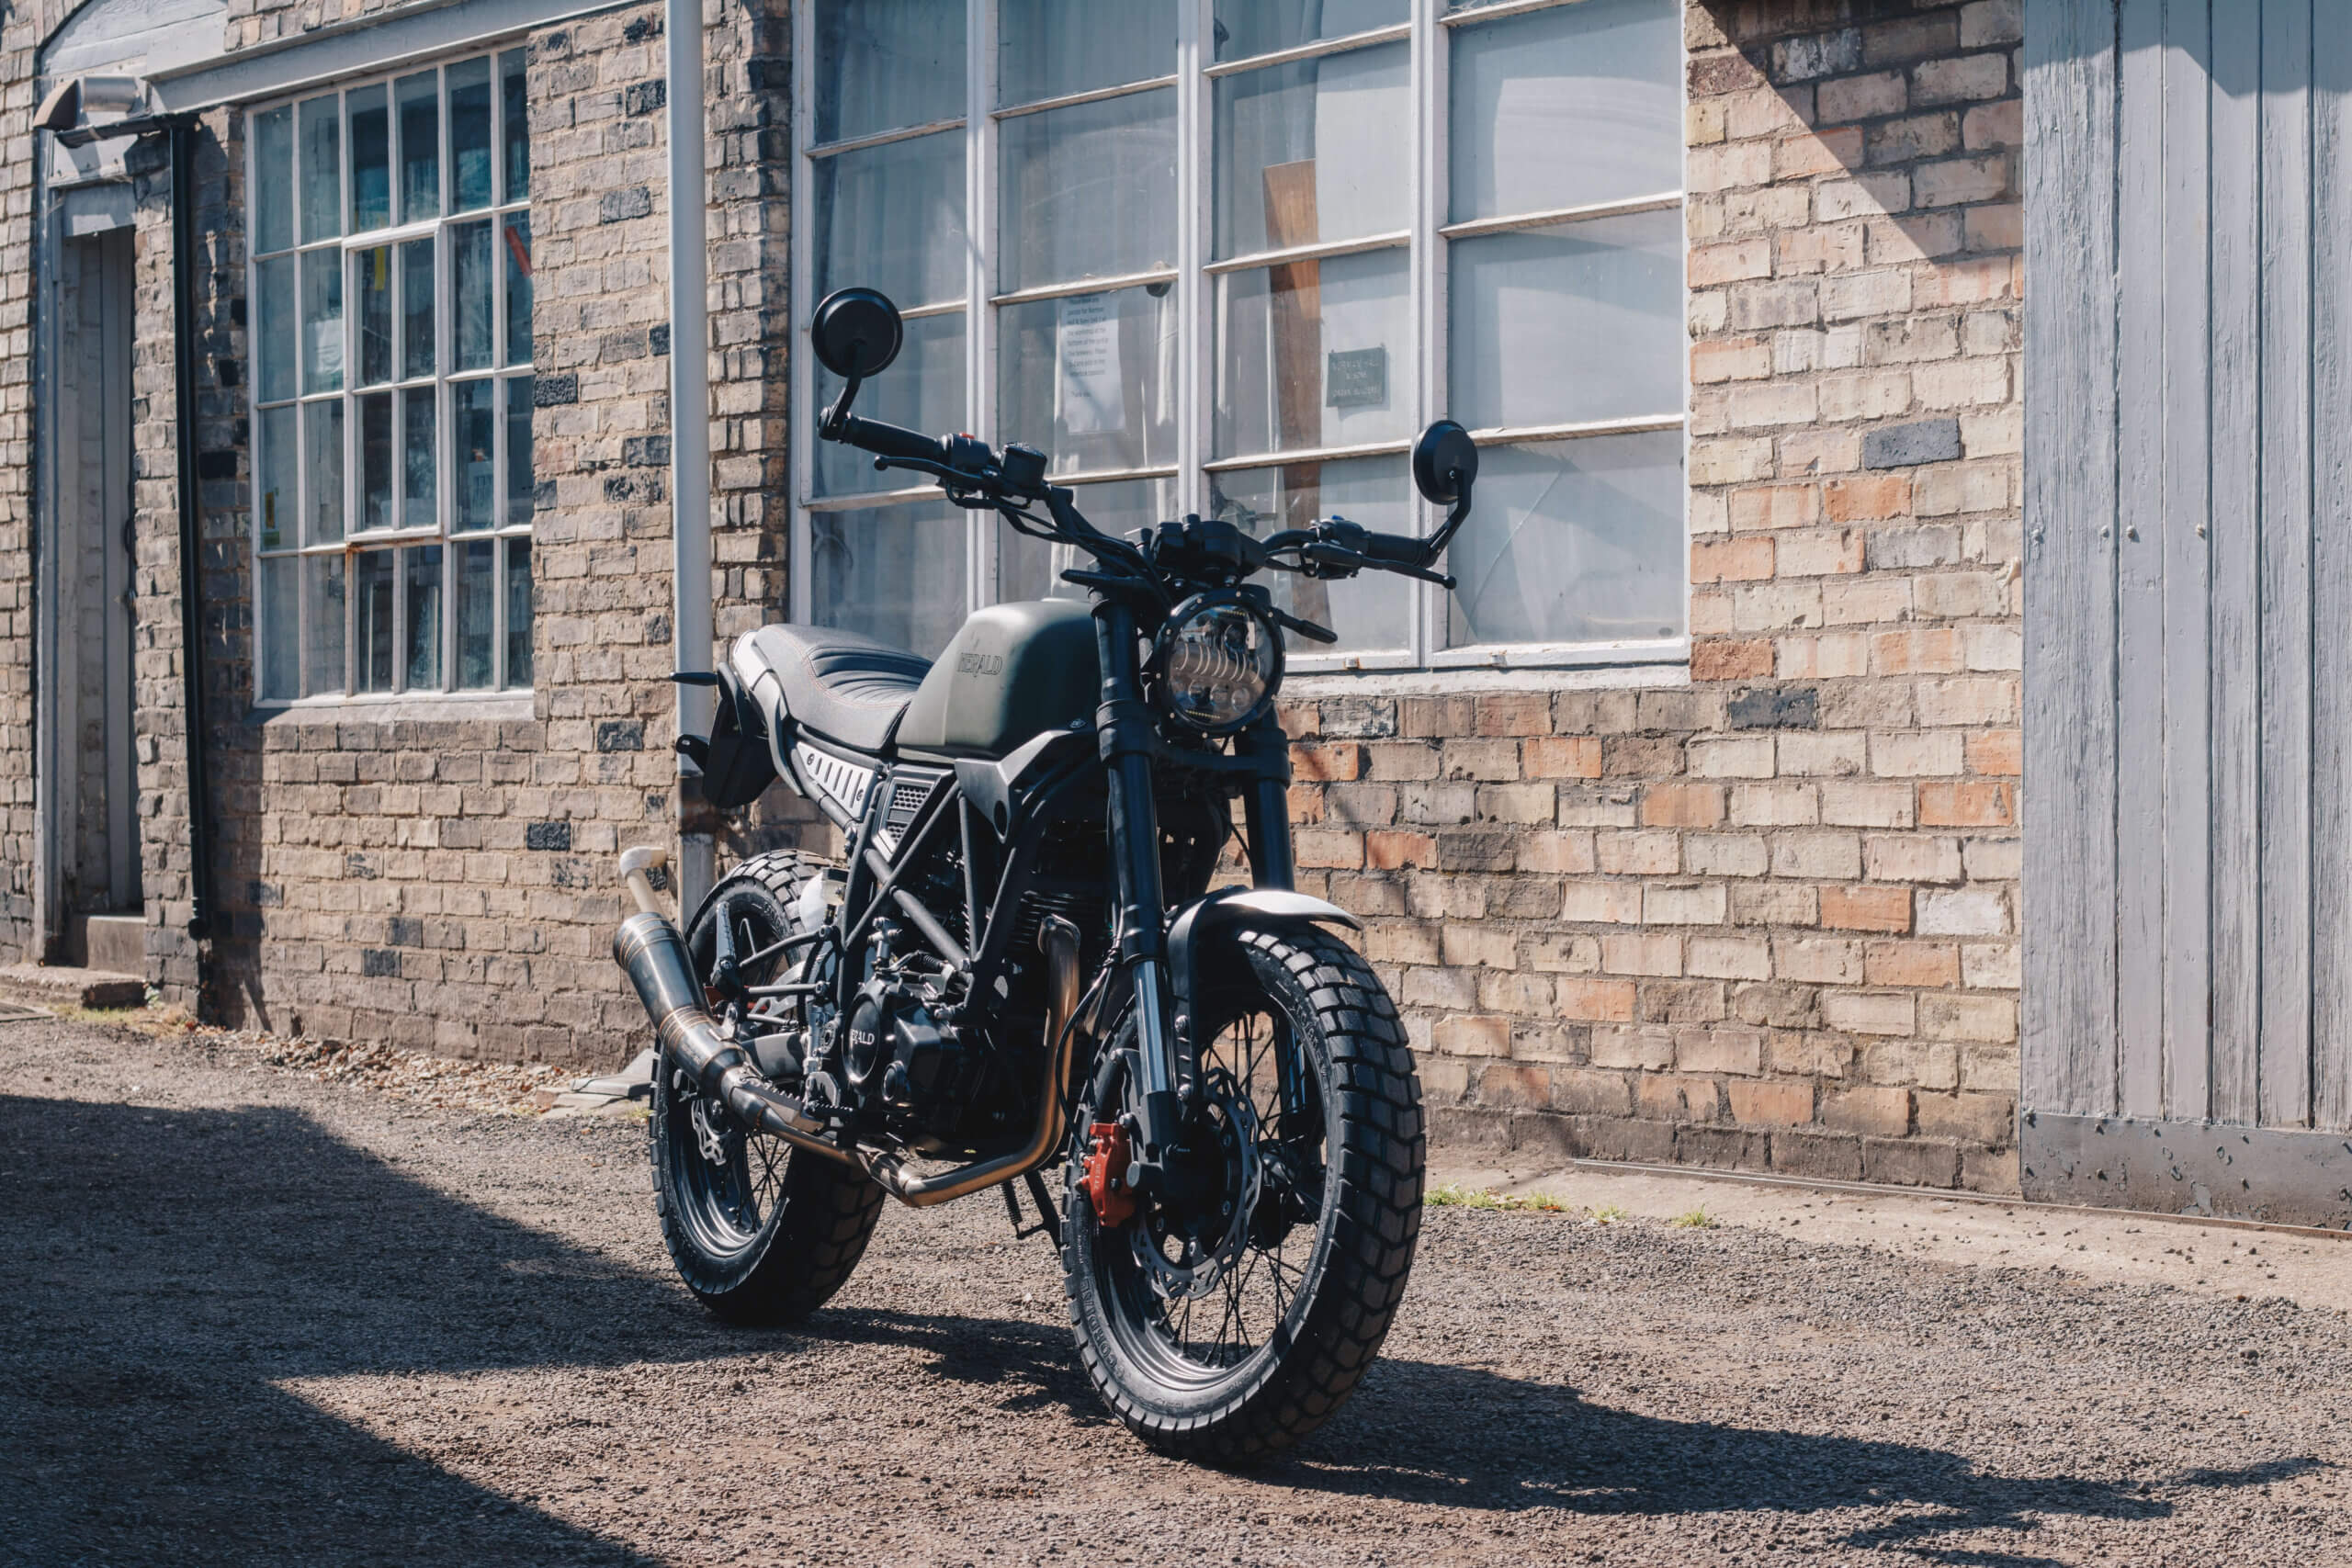 Motorcycle Live 2019 - Herald Motor Co